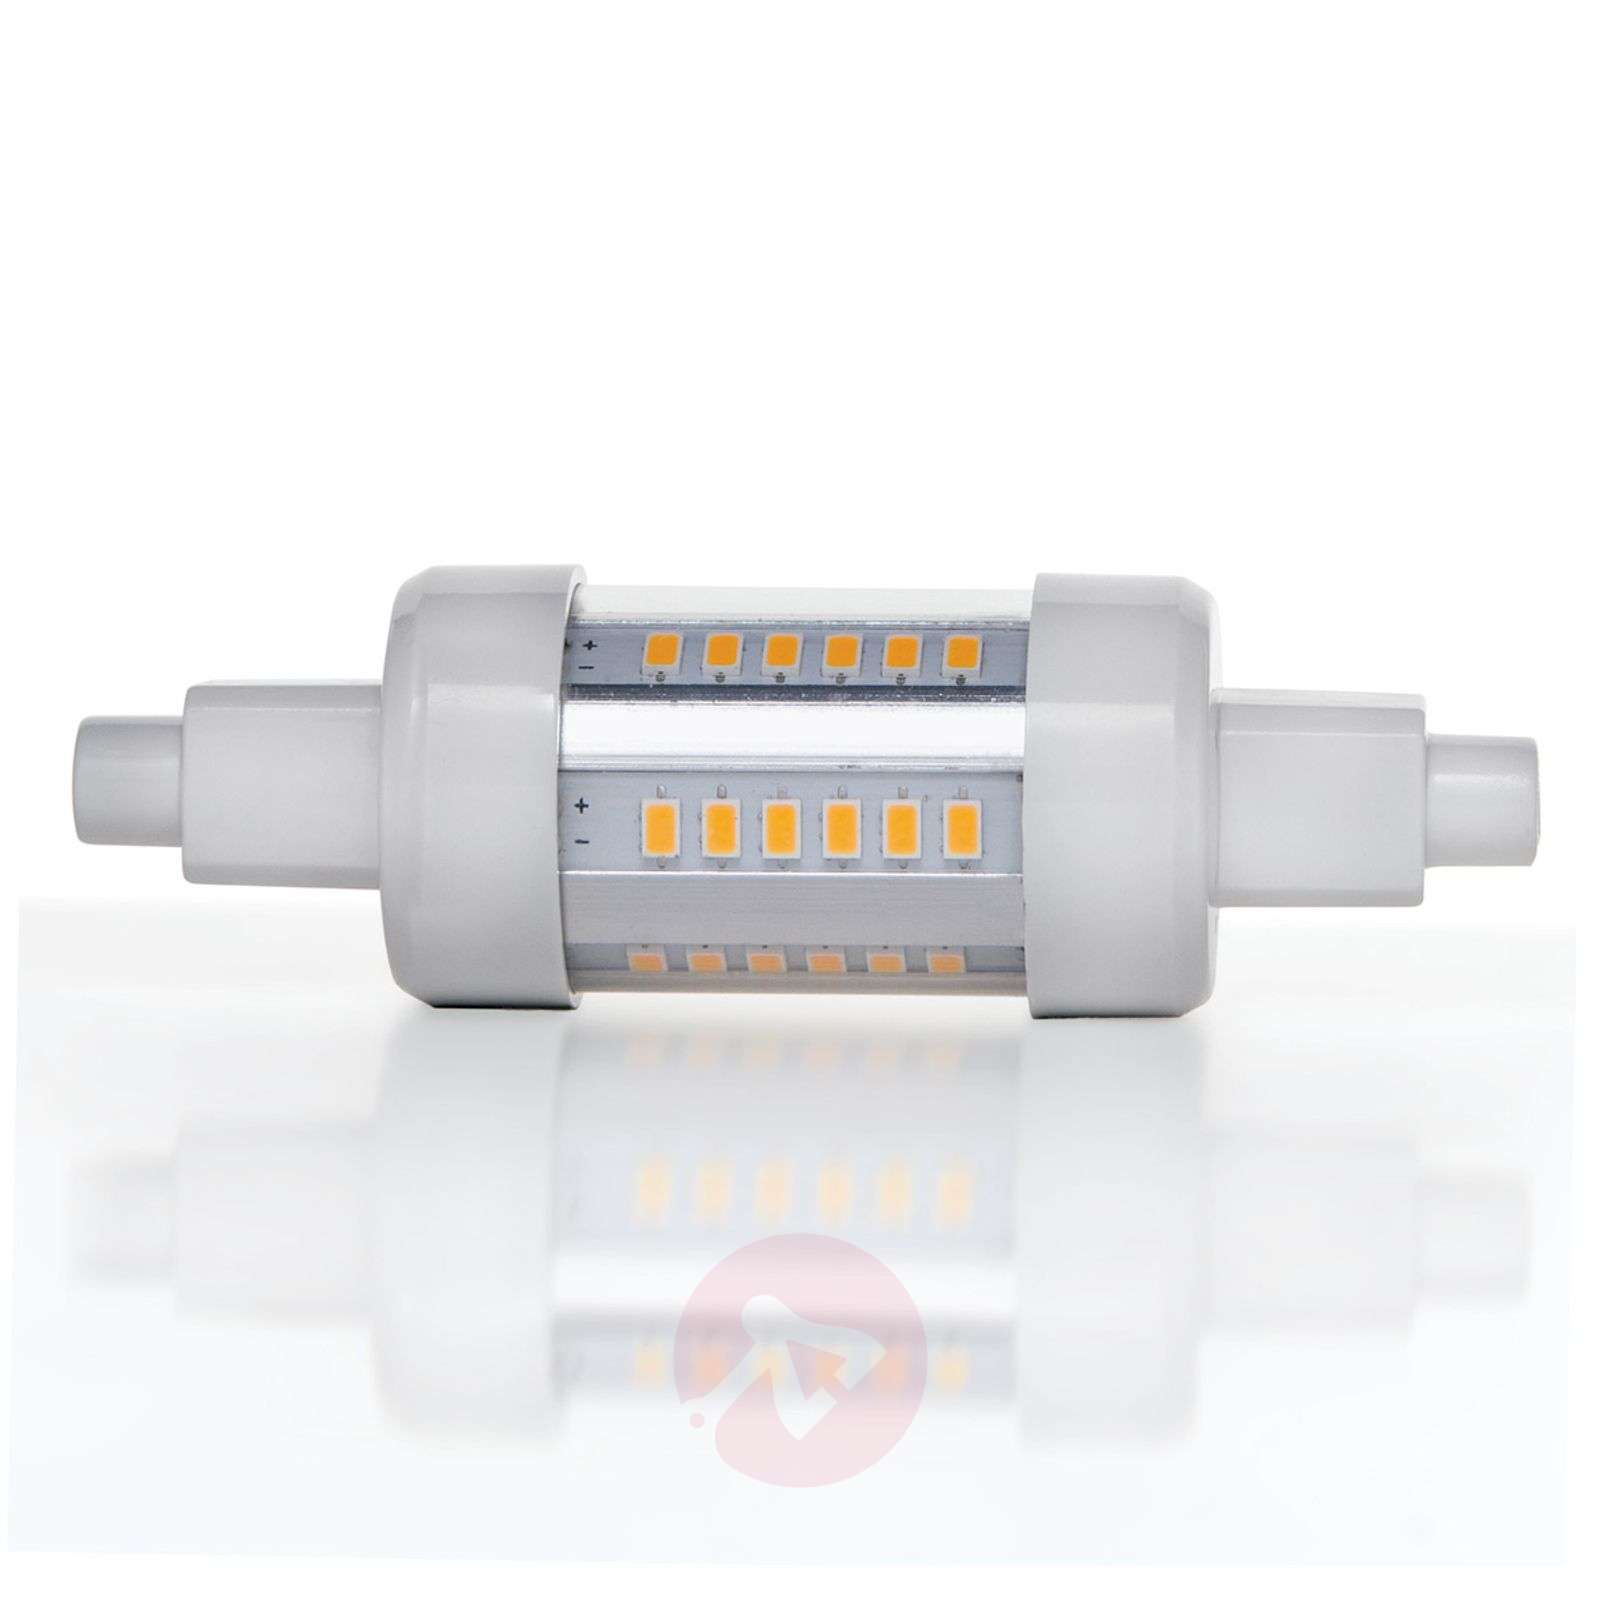 R7s 5W 830 LED lamp in staafvorm-7255106-02